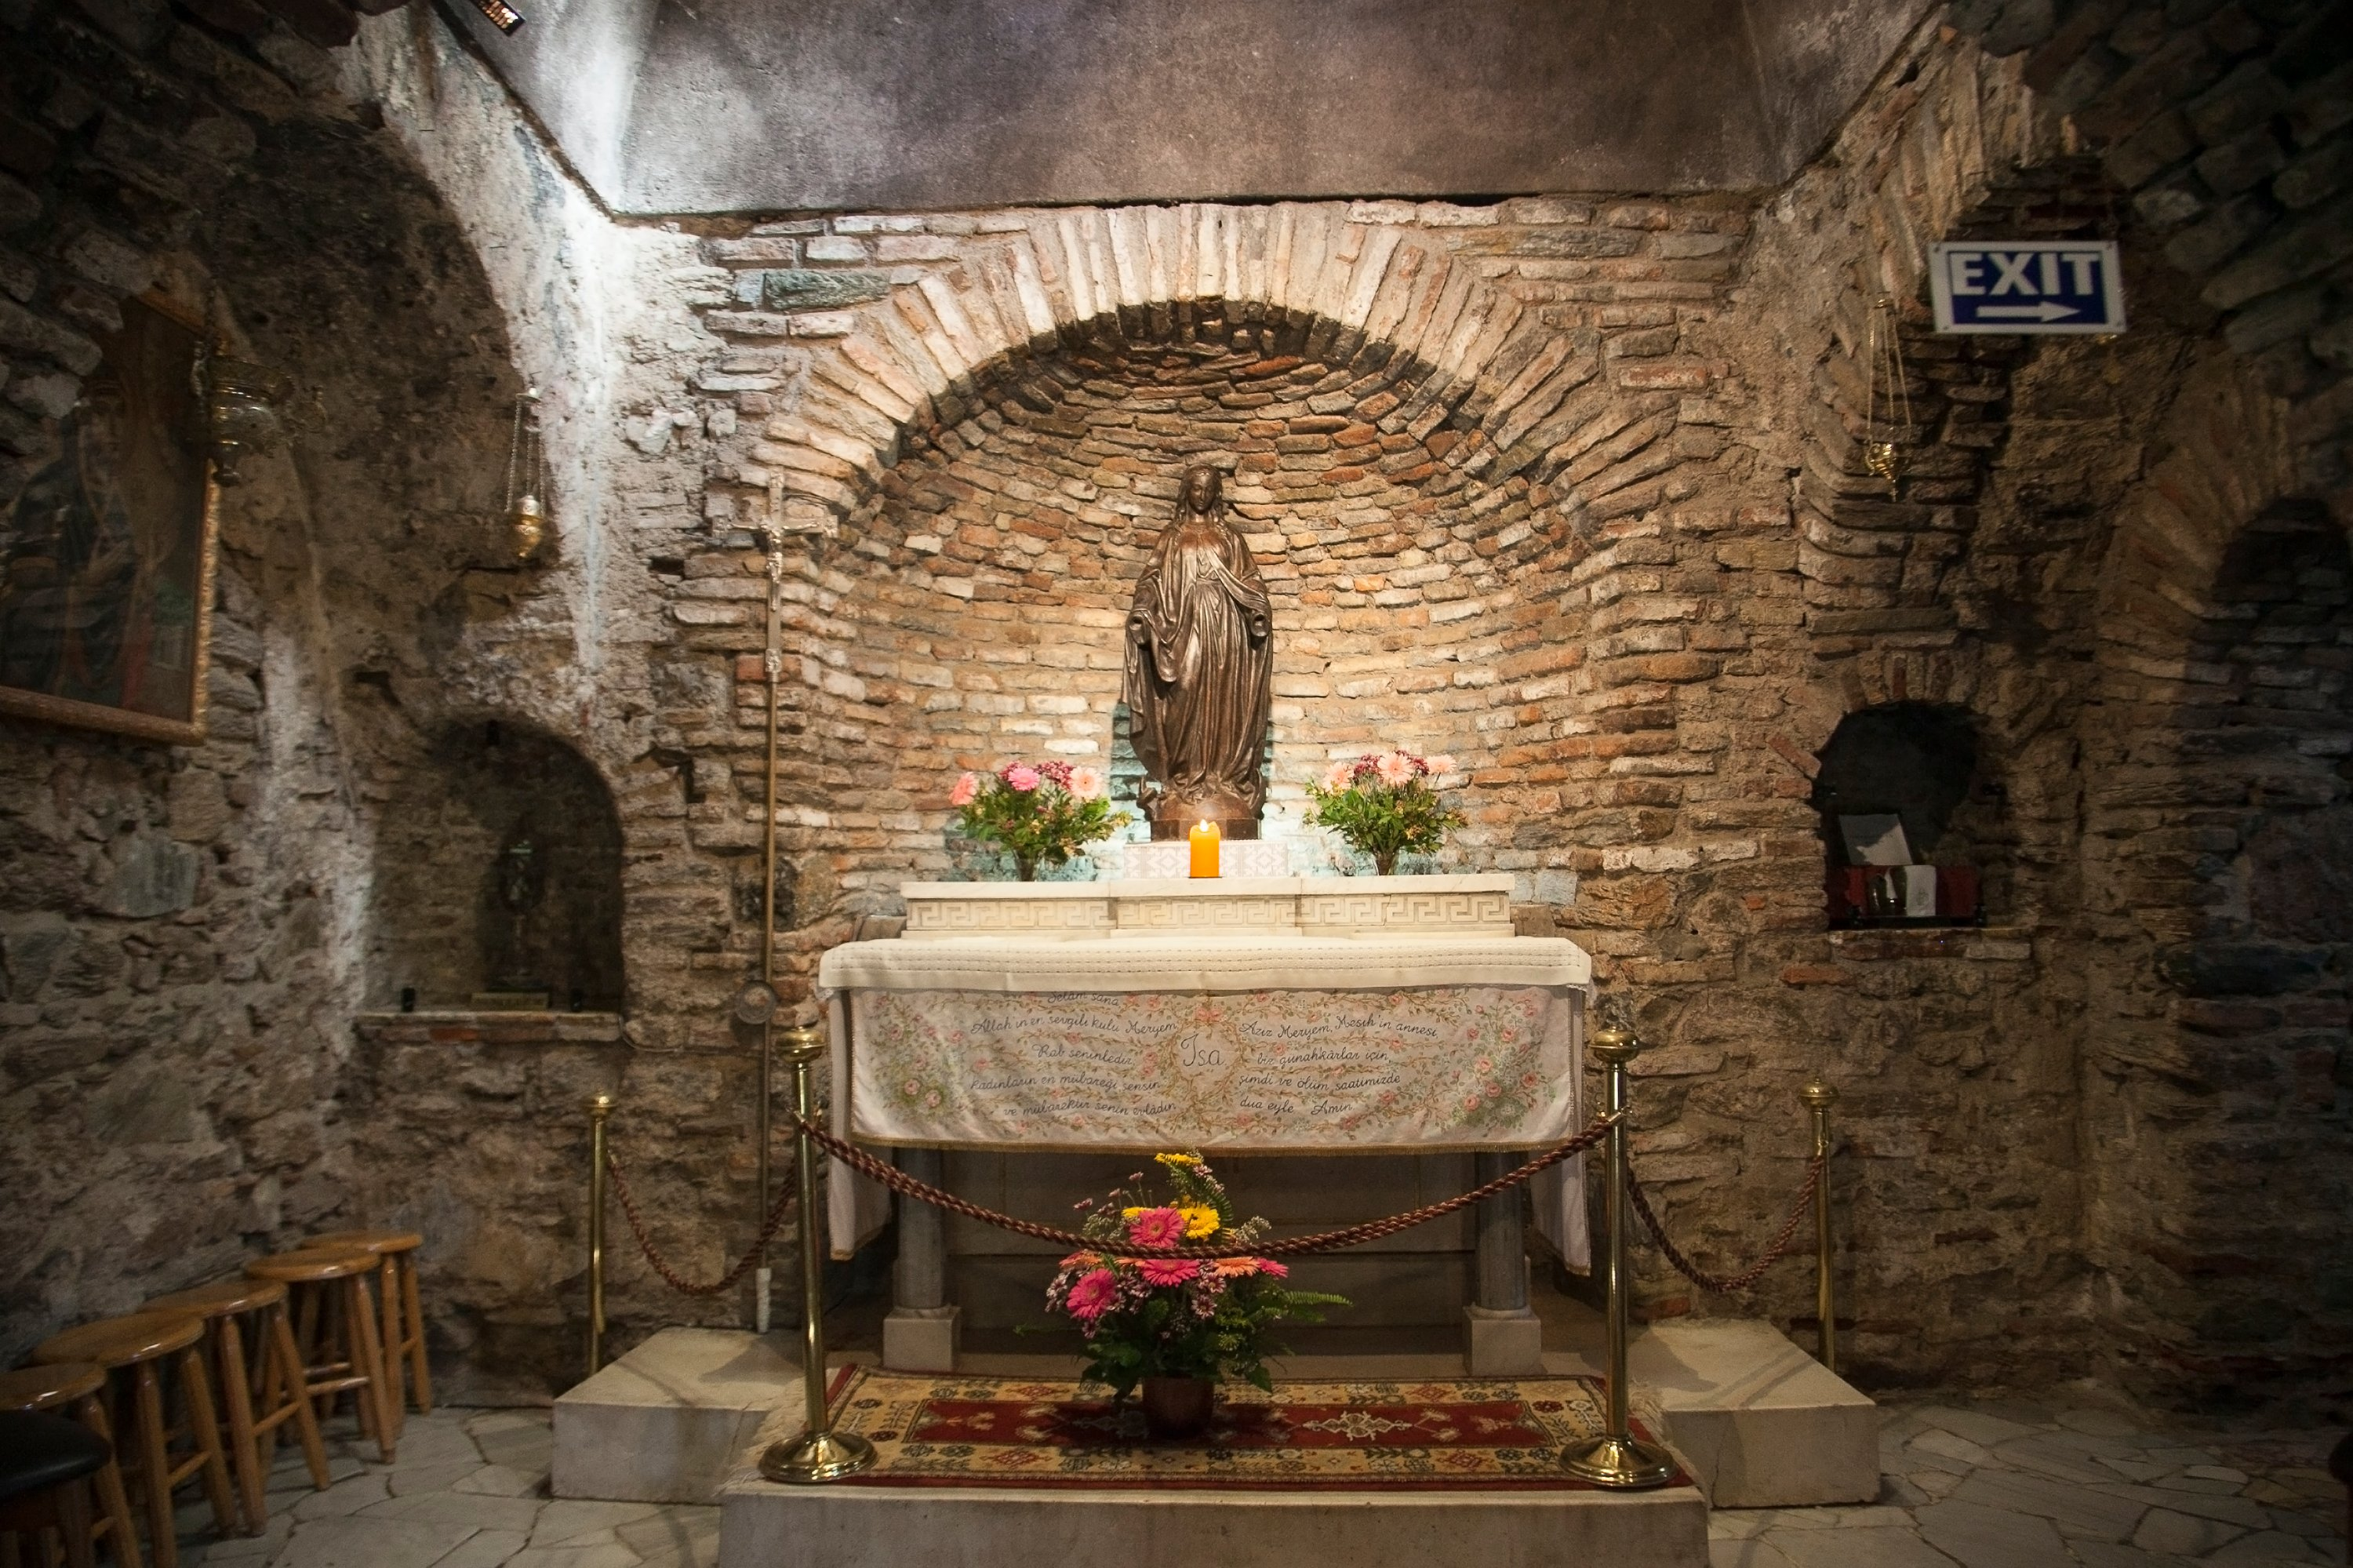 The House of Virgin Mary is the place where Mary is said to have spent her last days. (iStock Photo)